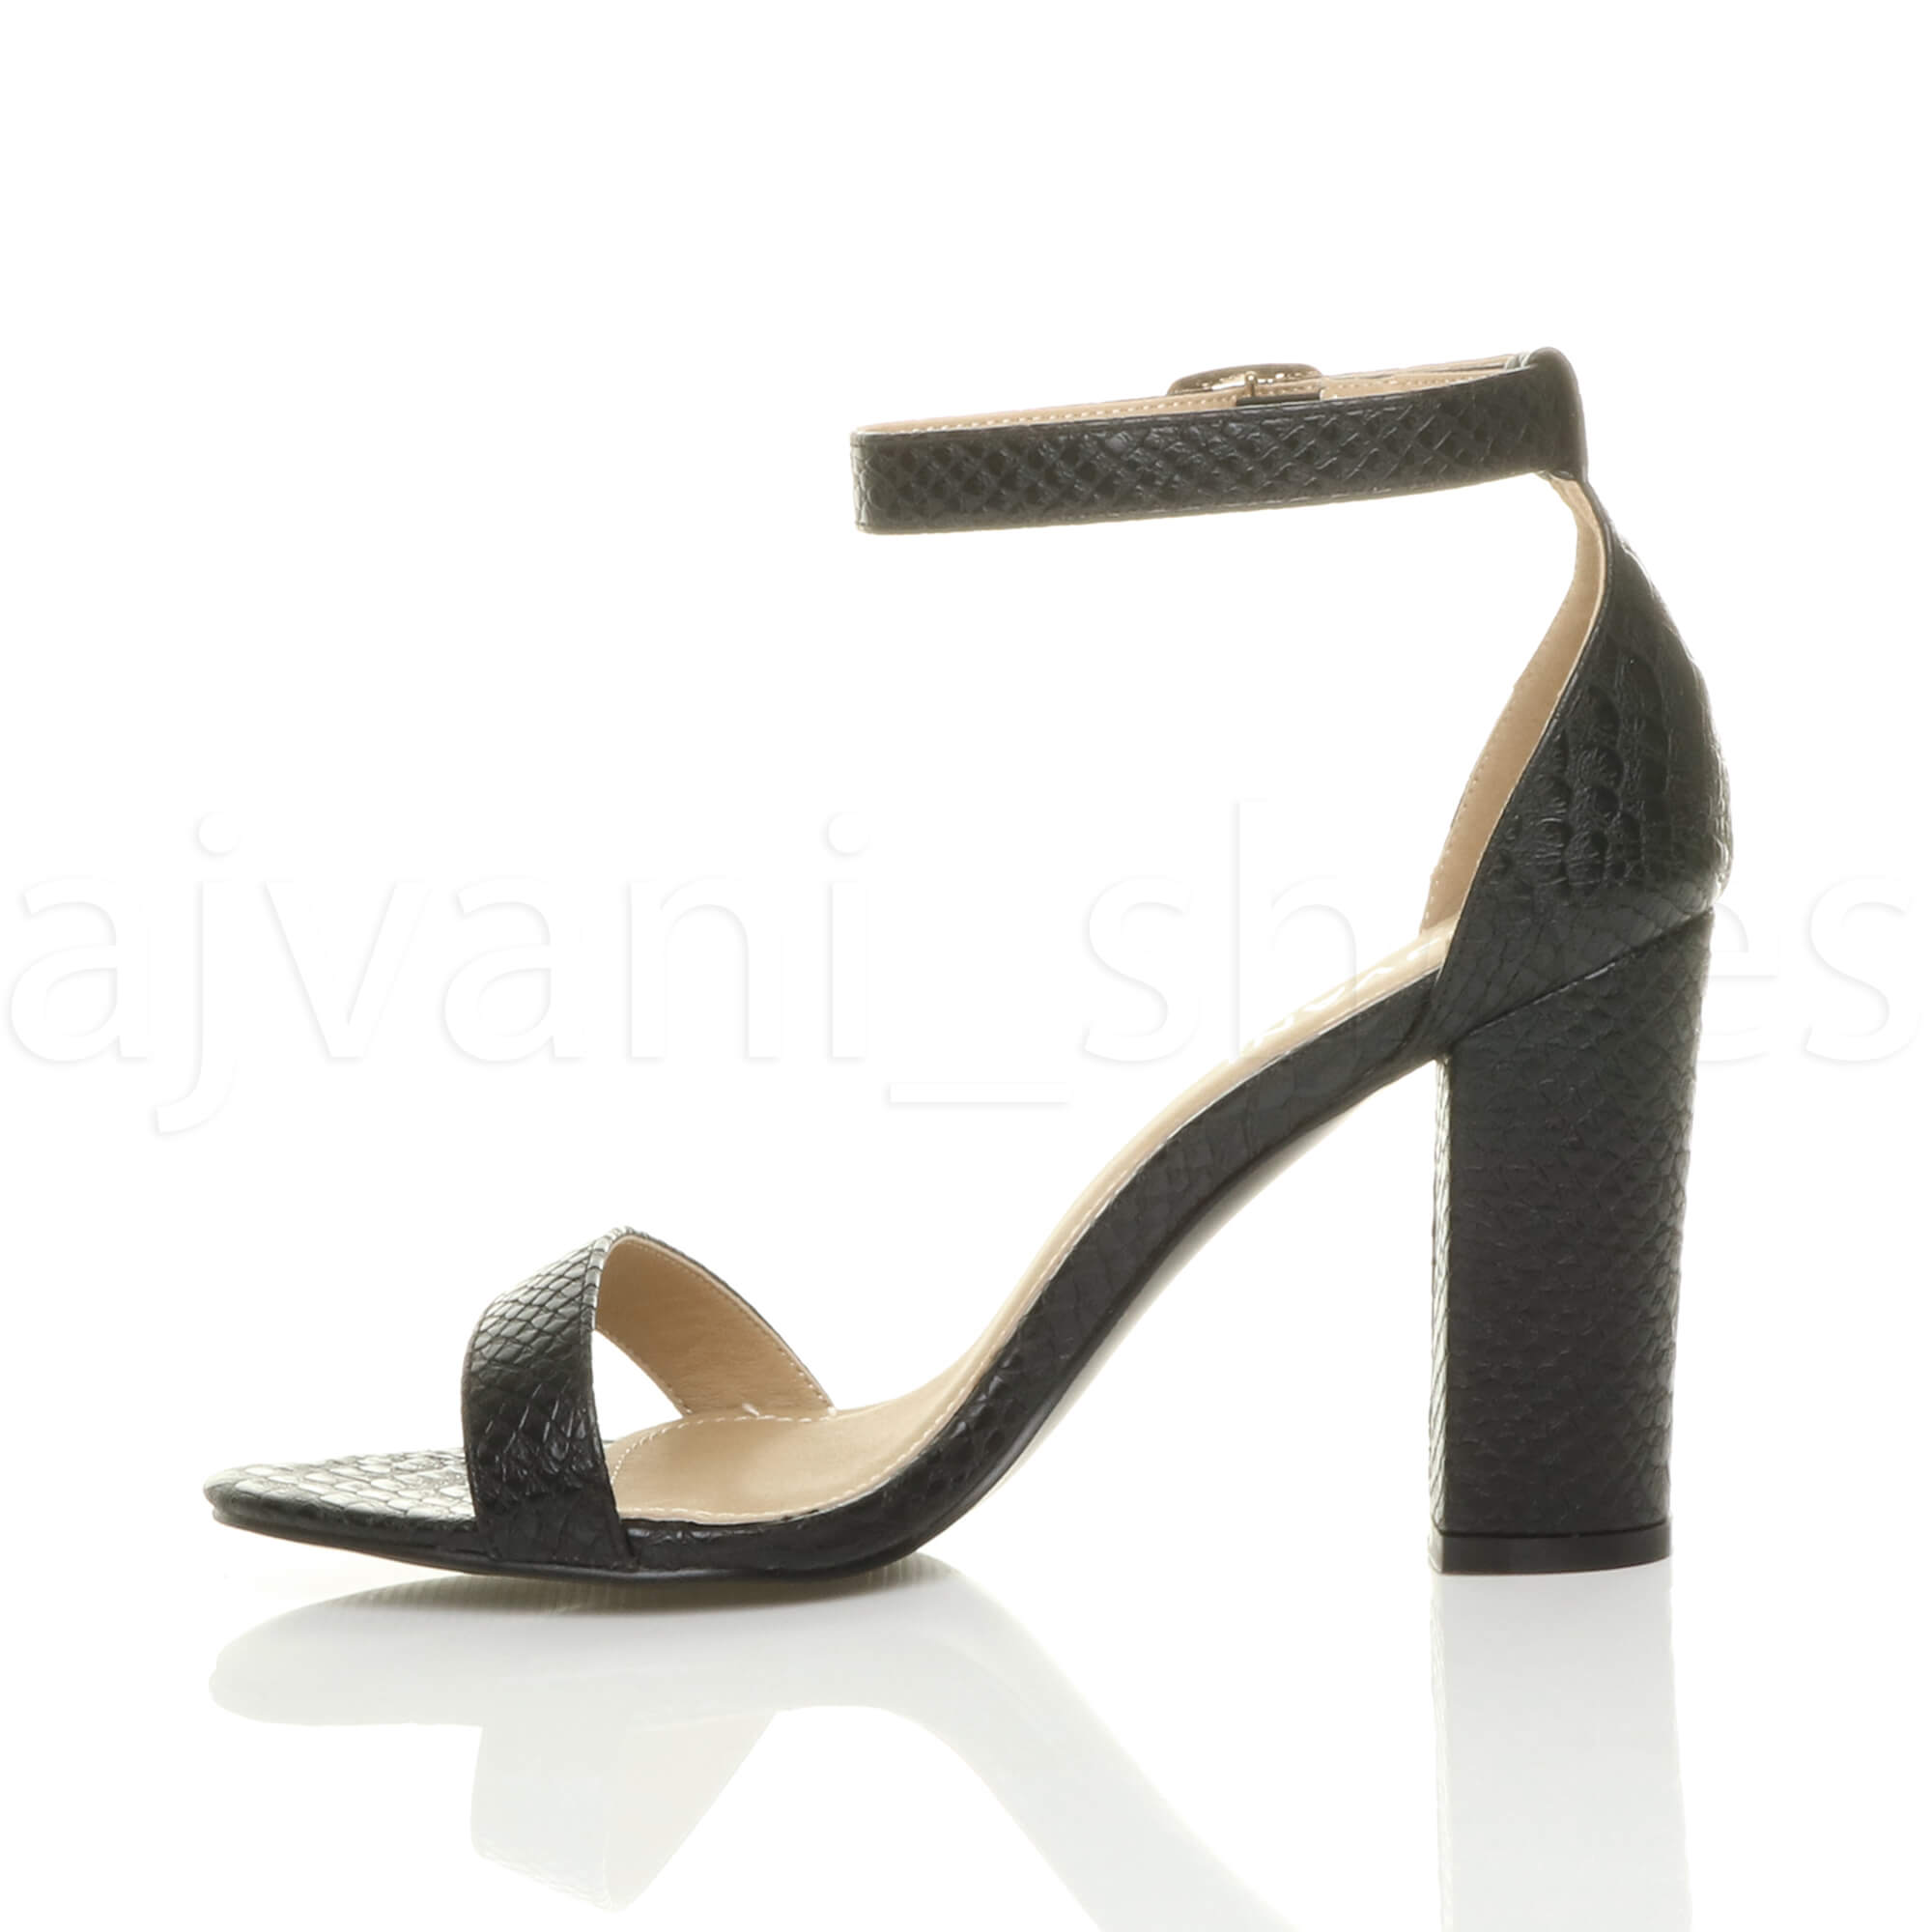 WOMENS-LADIES-BLOCK-HIGH-HEEL-ANKLE-STRAP-PEEP-TOE-STRAPPY-SANDALS-SHOES-SIZE thumbnail 32